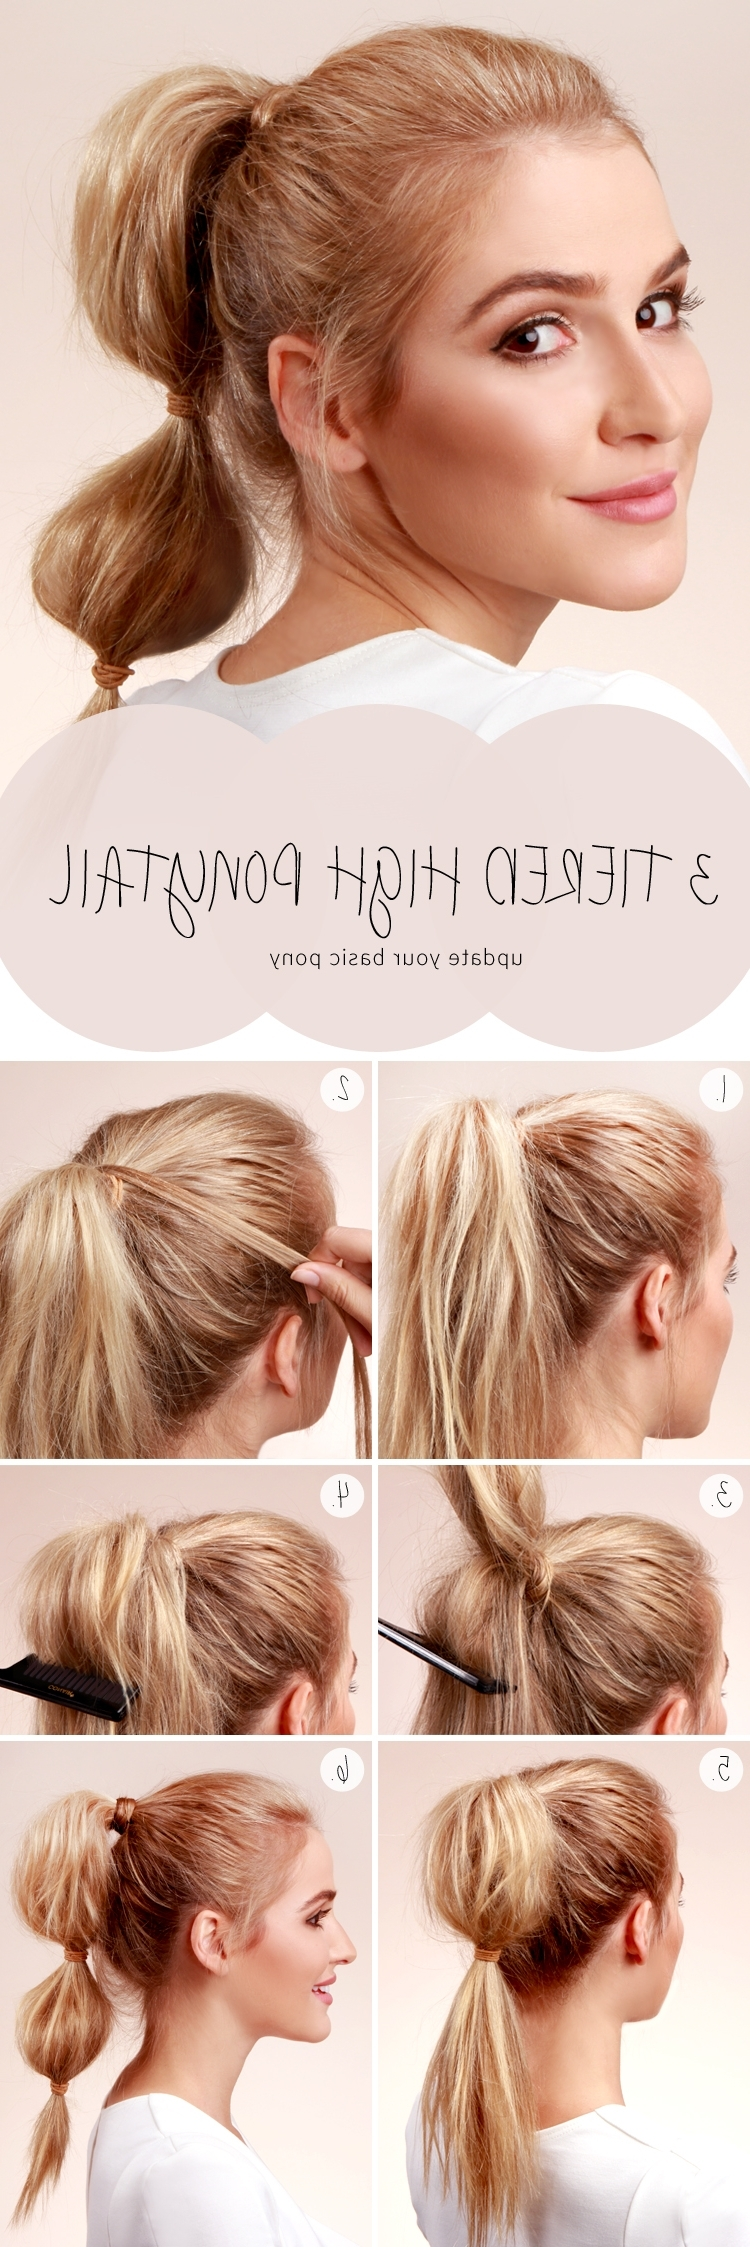 Most Current High Bubble Ponytail Hairstyles In Bubble Ponytail Tutorial – Hair (View 11 of 20)